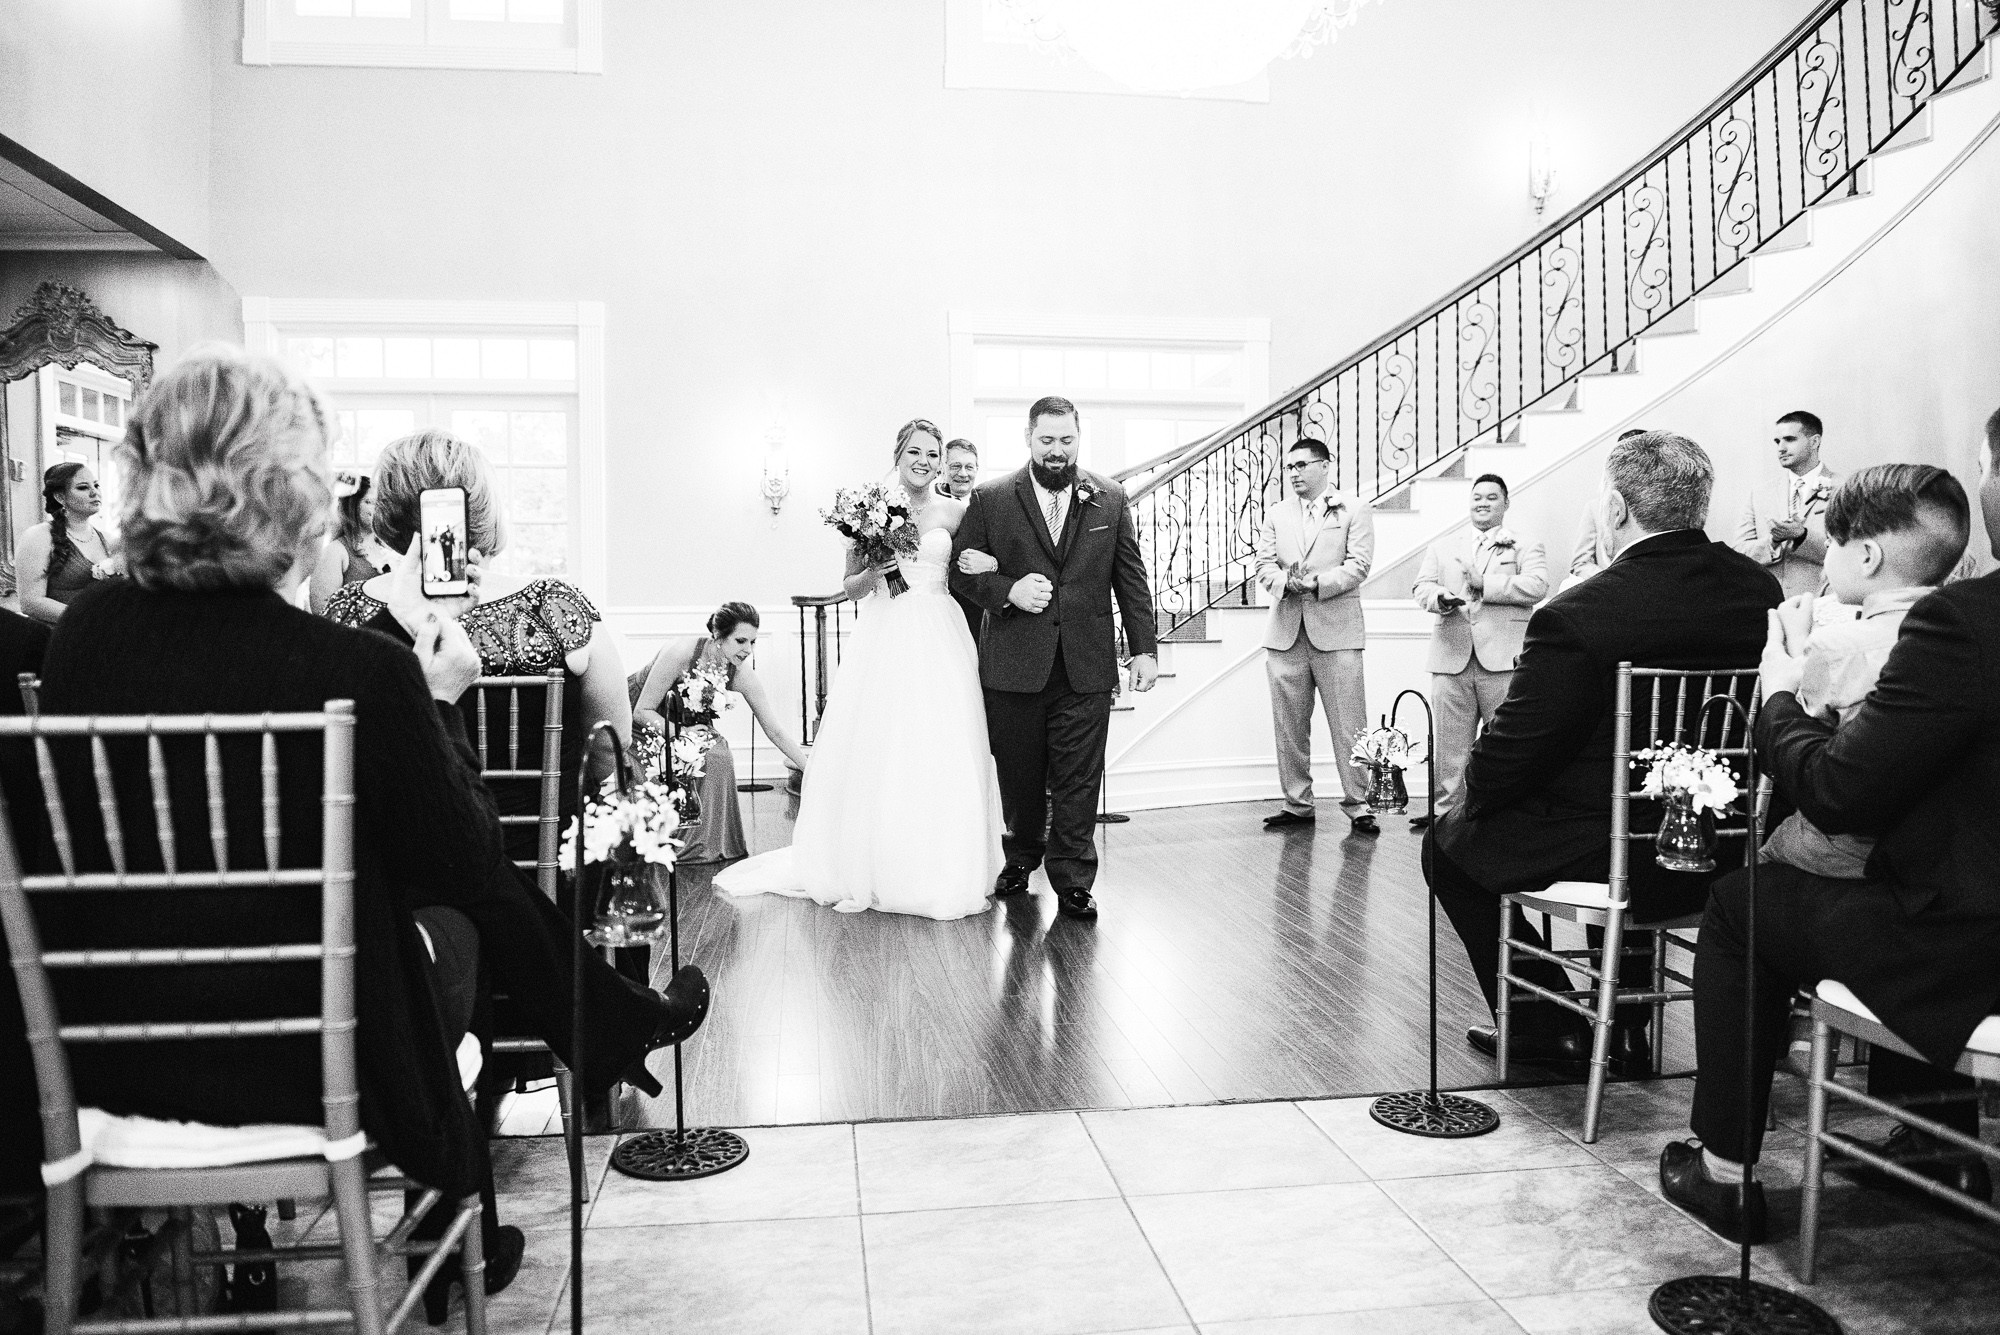 Stephen & Amanda's Wedding (66 of 228).jpg